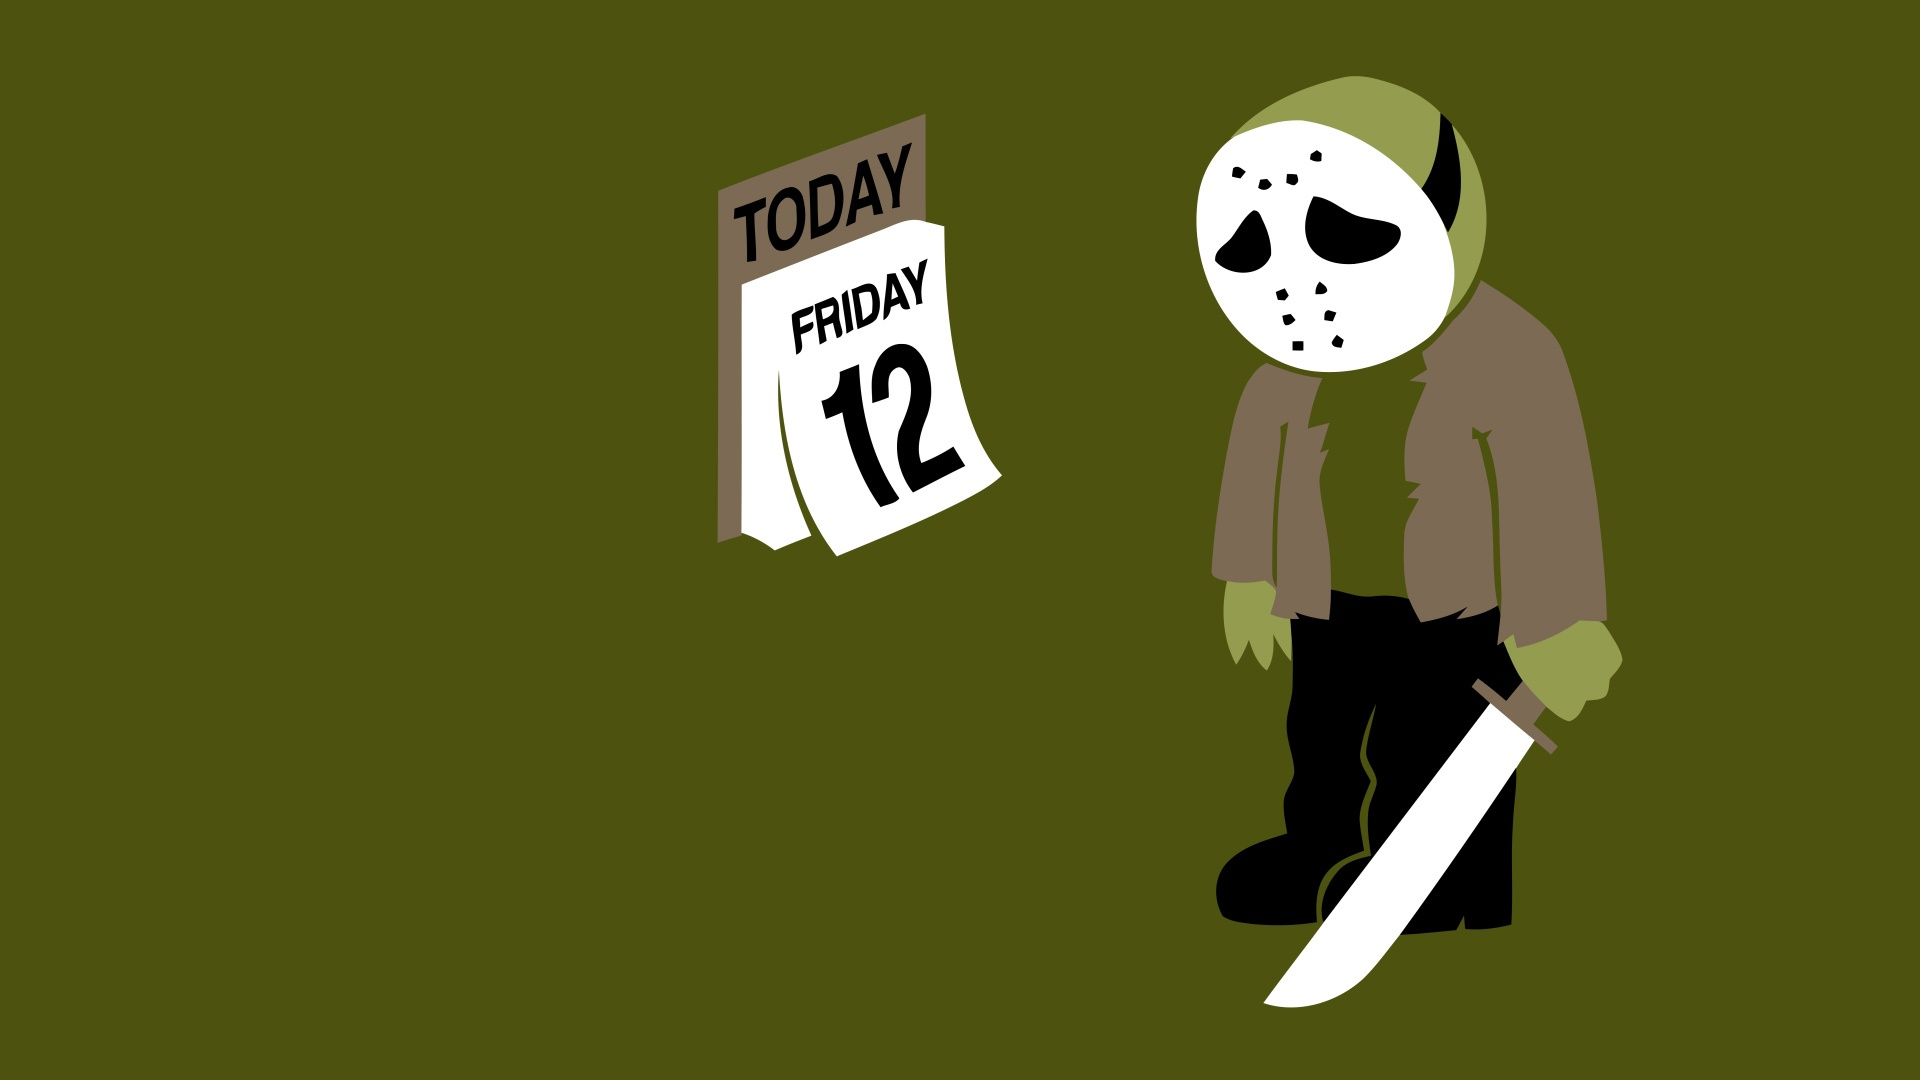 Killer Friday Funny Wallpapers Free Hd For Desktop Hd Wallpaper